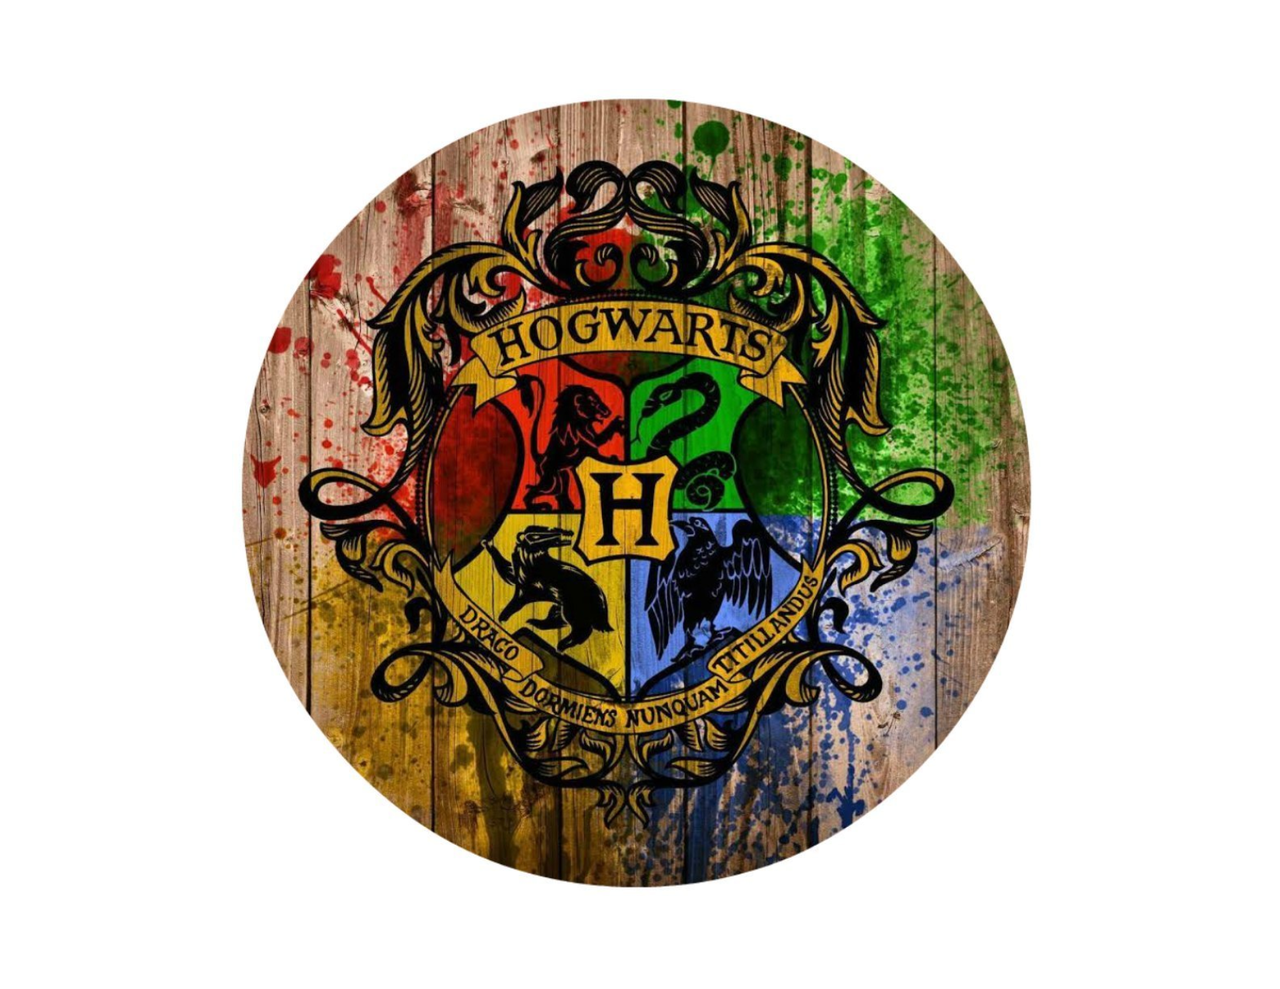 Harry Potter Hogwarts Logo On Wood Background Edible Icing